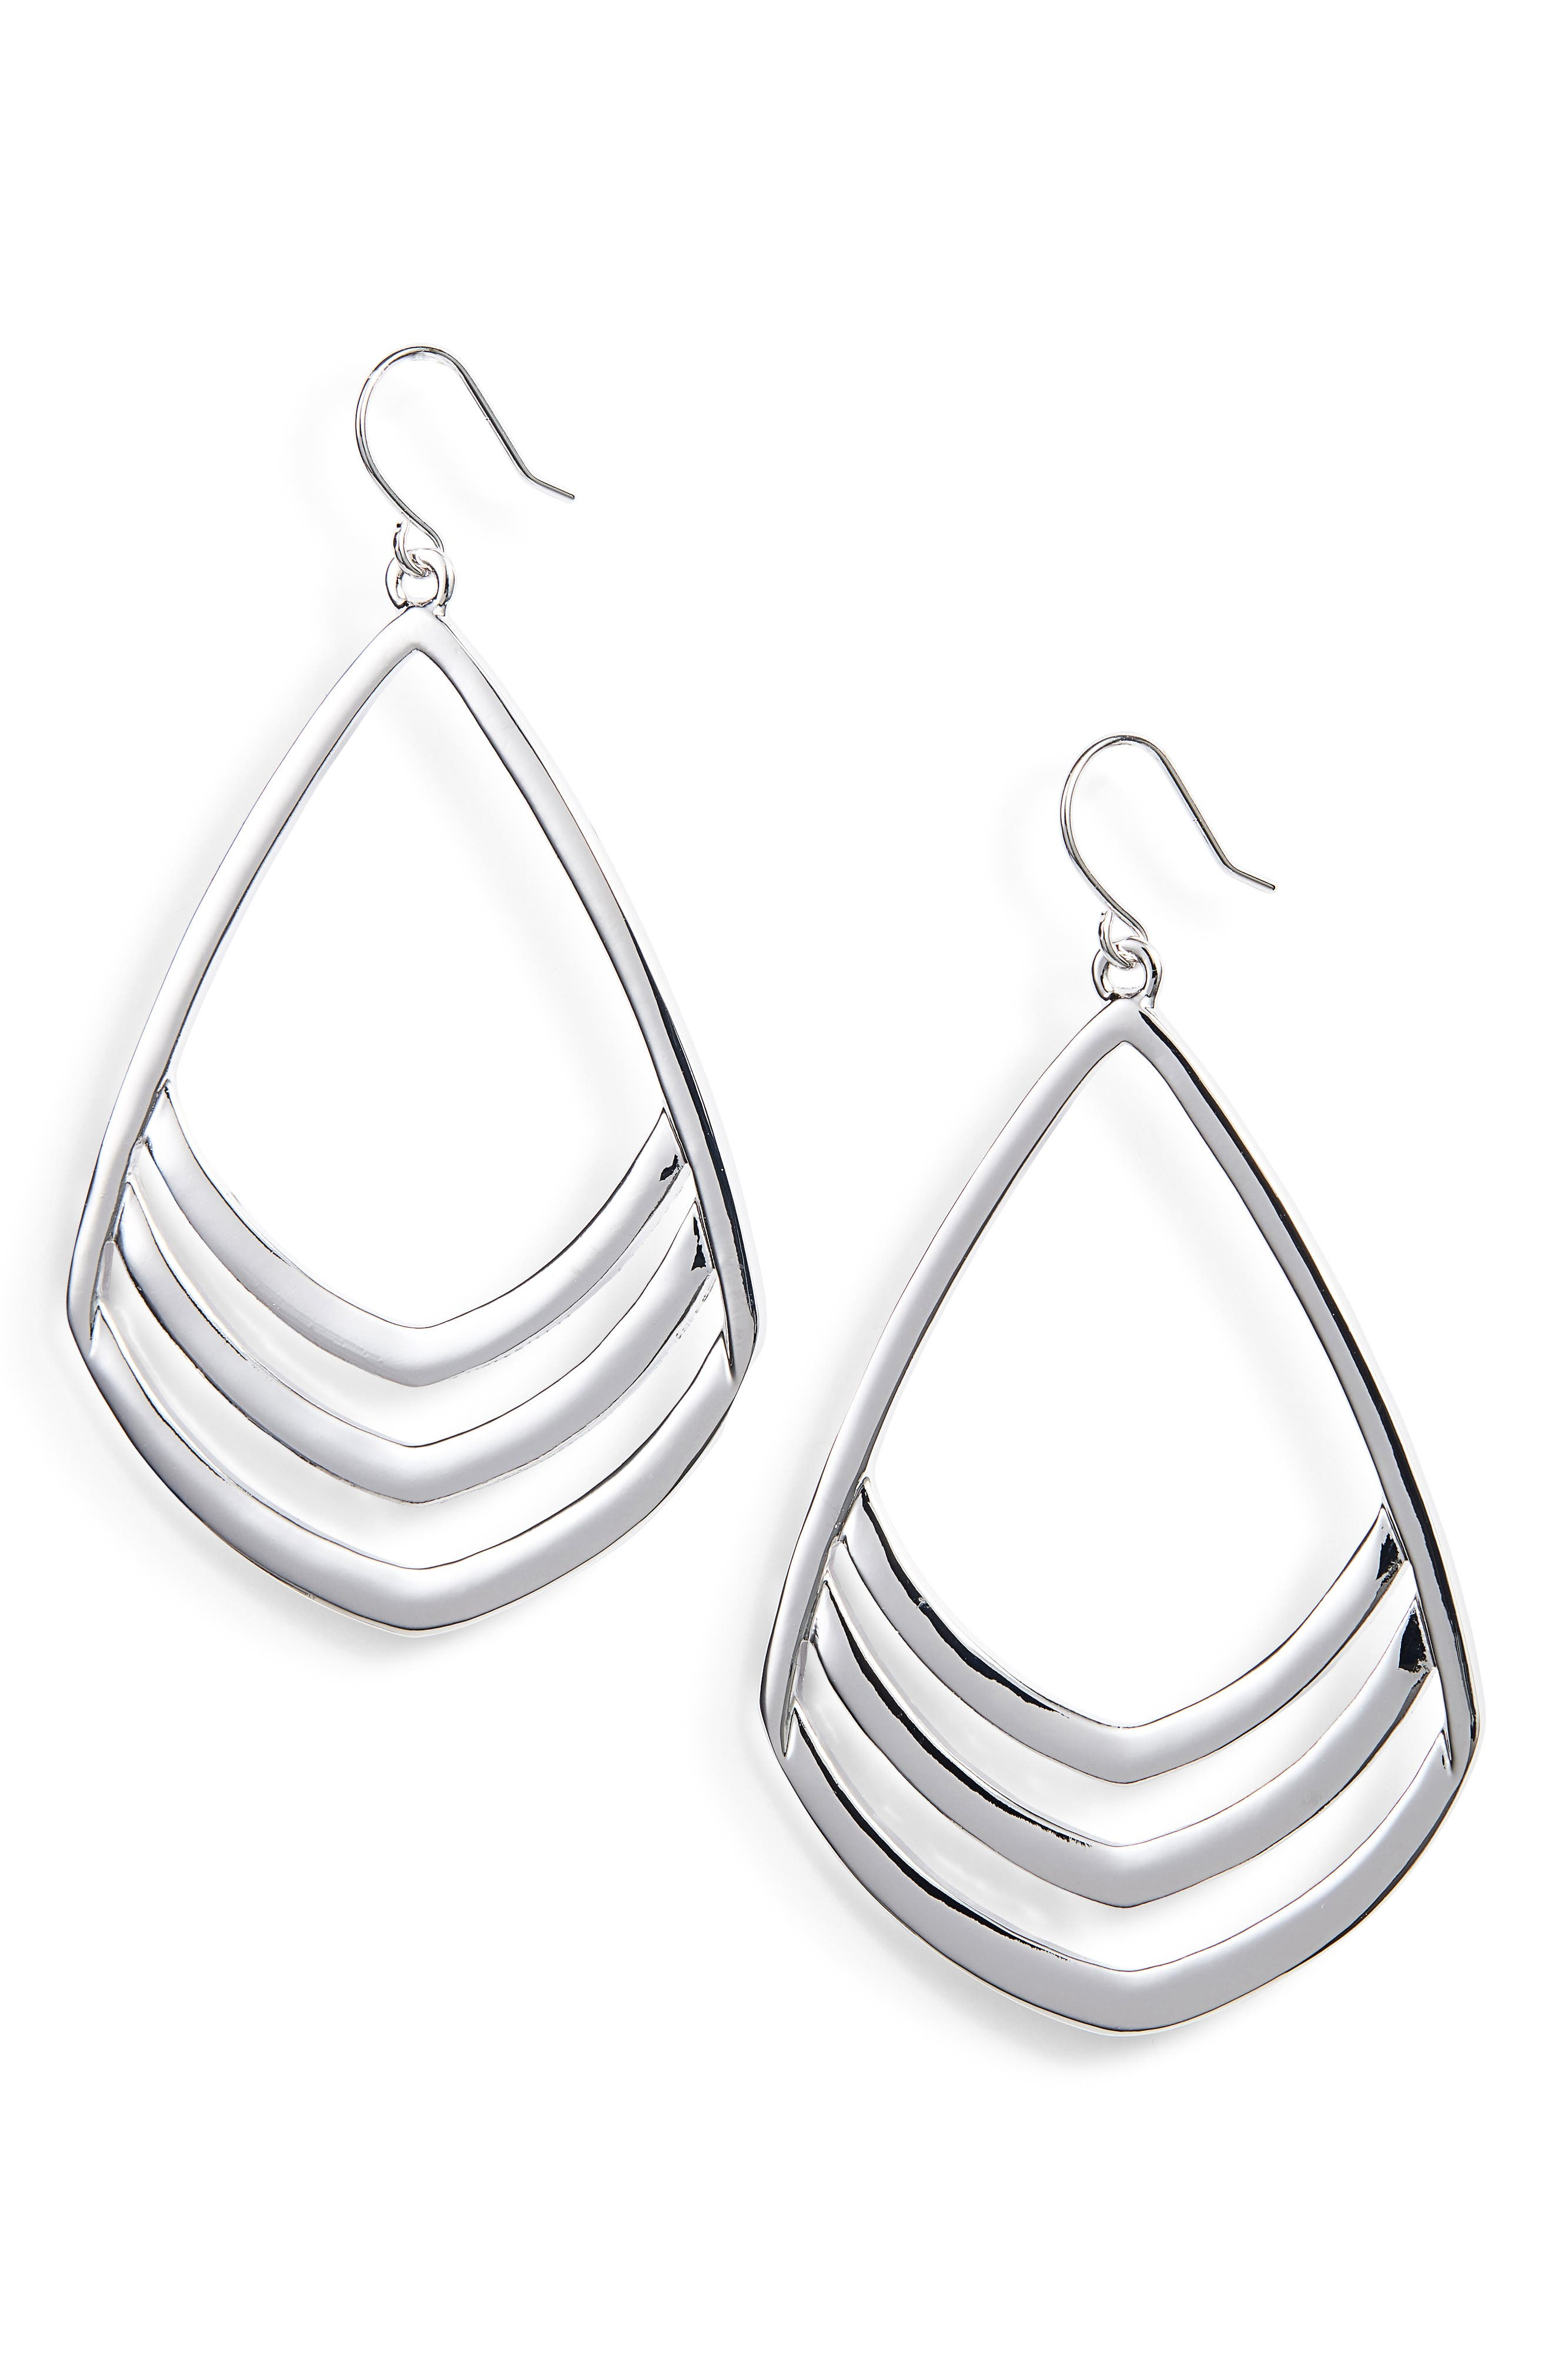 Pear Drop Earrings,                             Main thumbnail 1, color,                             045